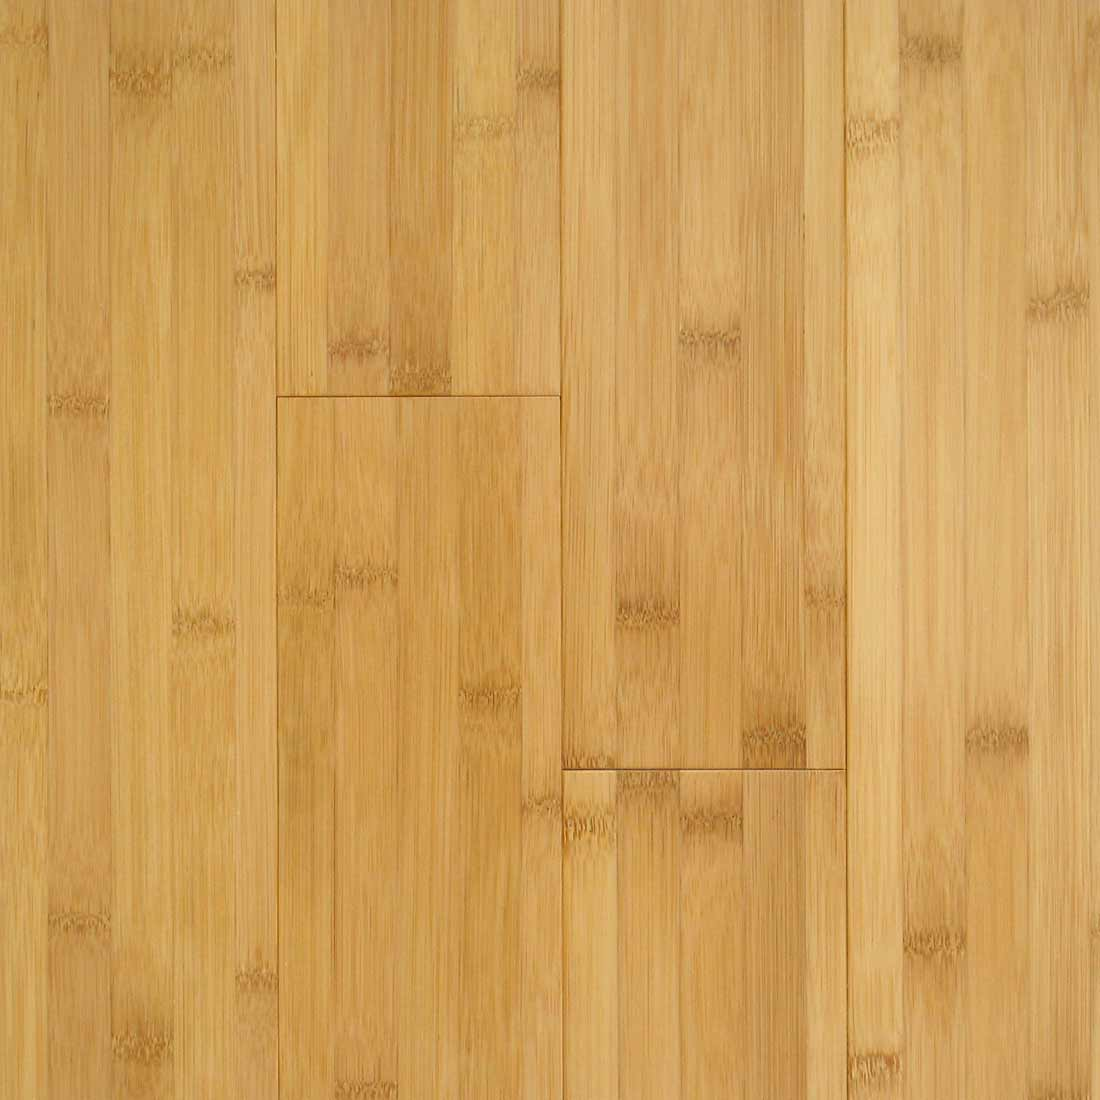 Carbonized Horizontal Matte Hawa Bamboo Flooring